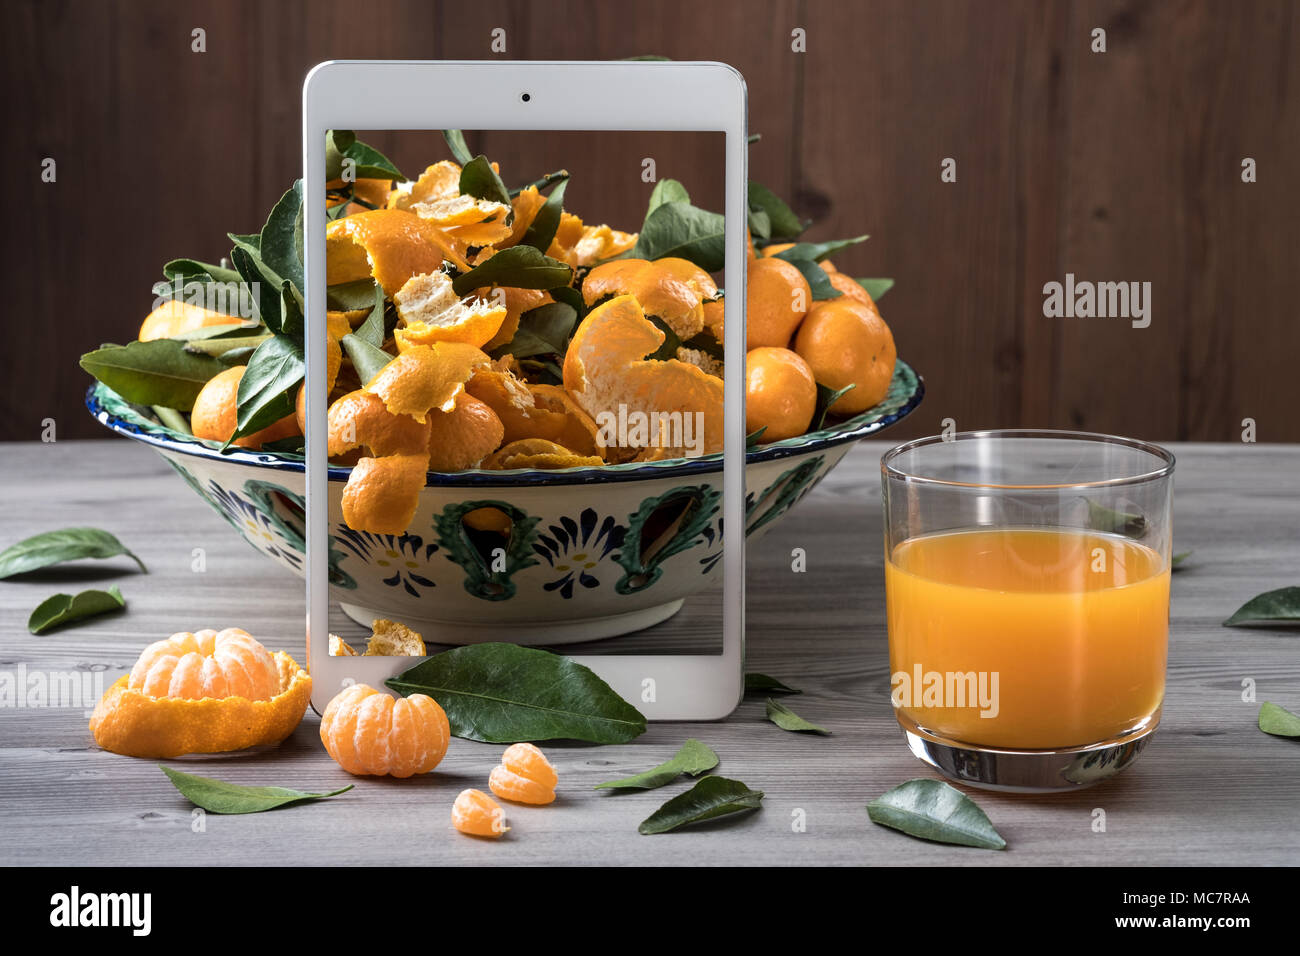 White mobile tablet standing in front of ceramic dish filled fresh tangerines on gray wooden table. Pop up visual effect. Creative food composition. - Stock Image